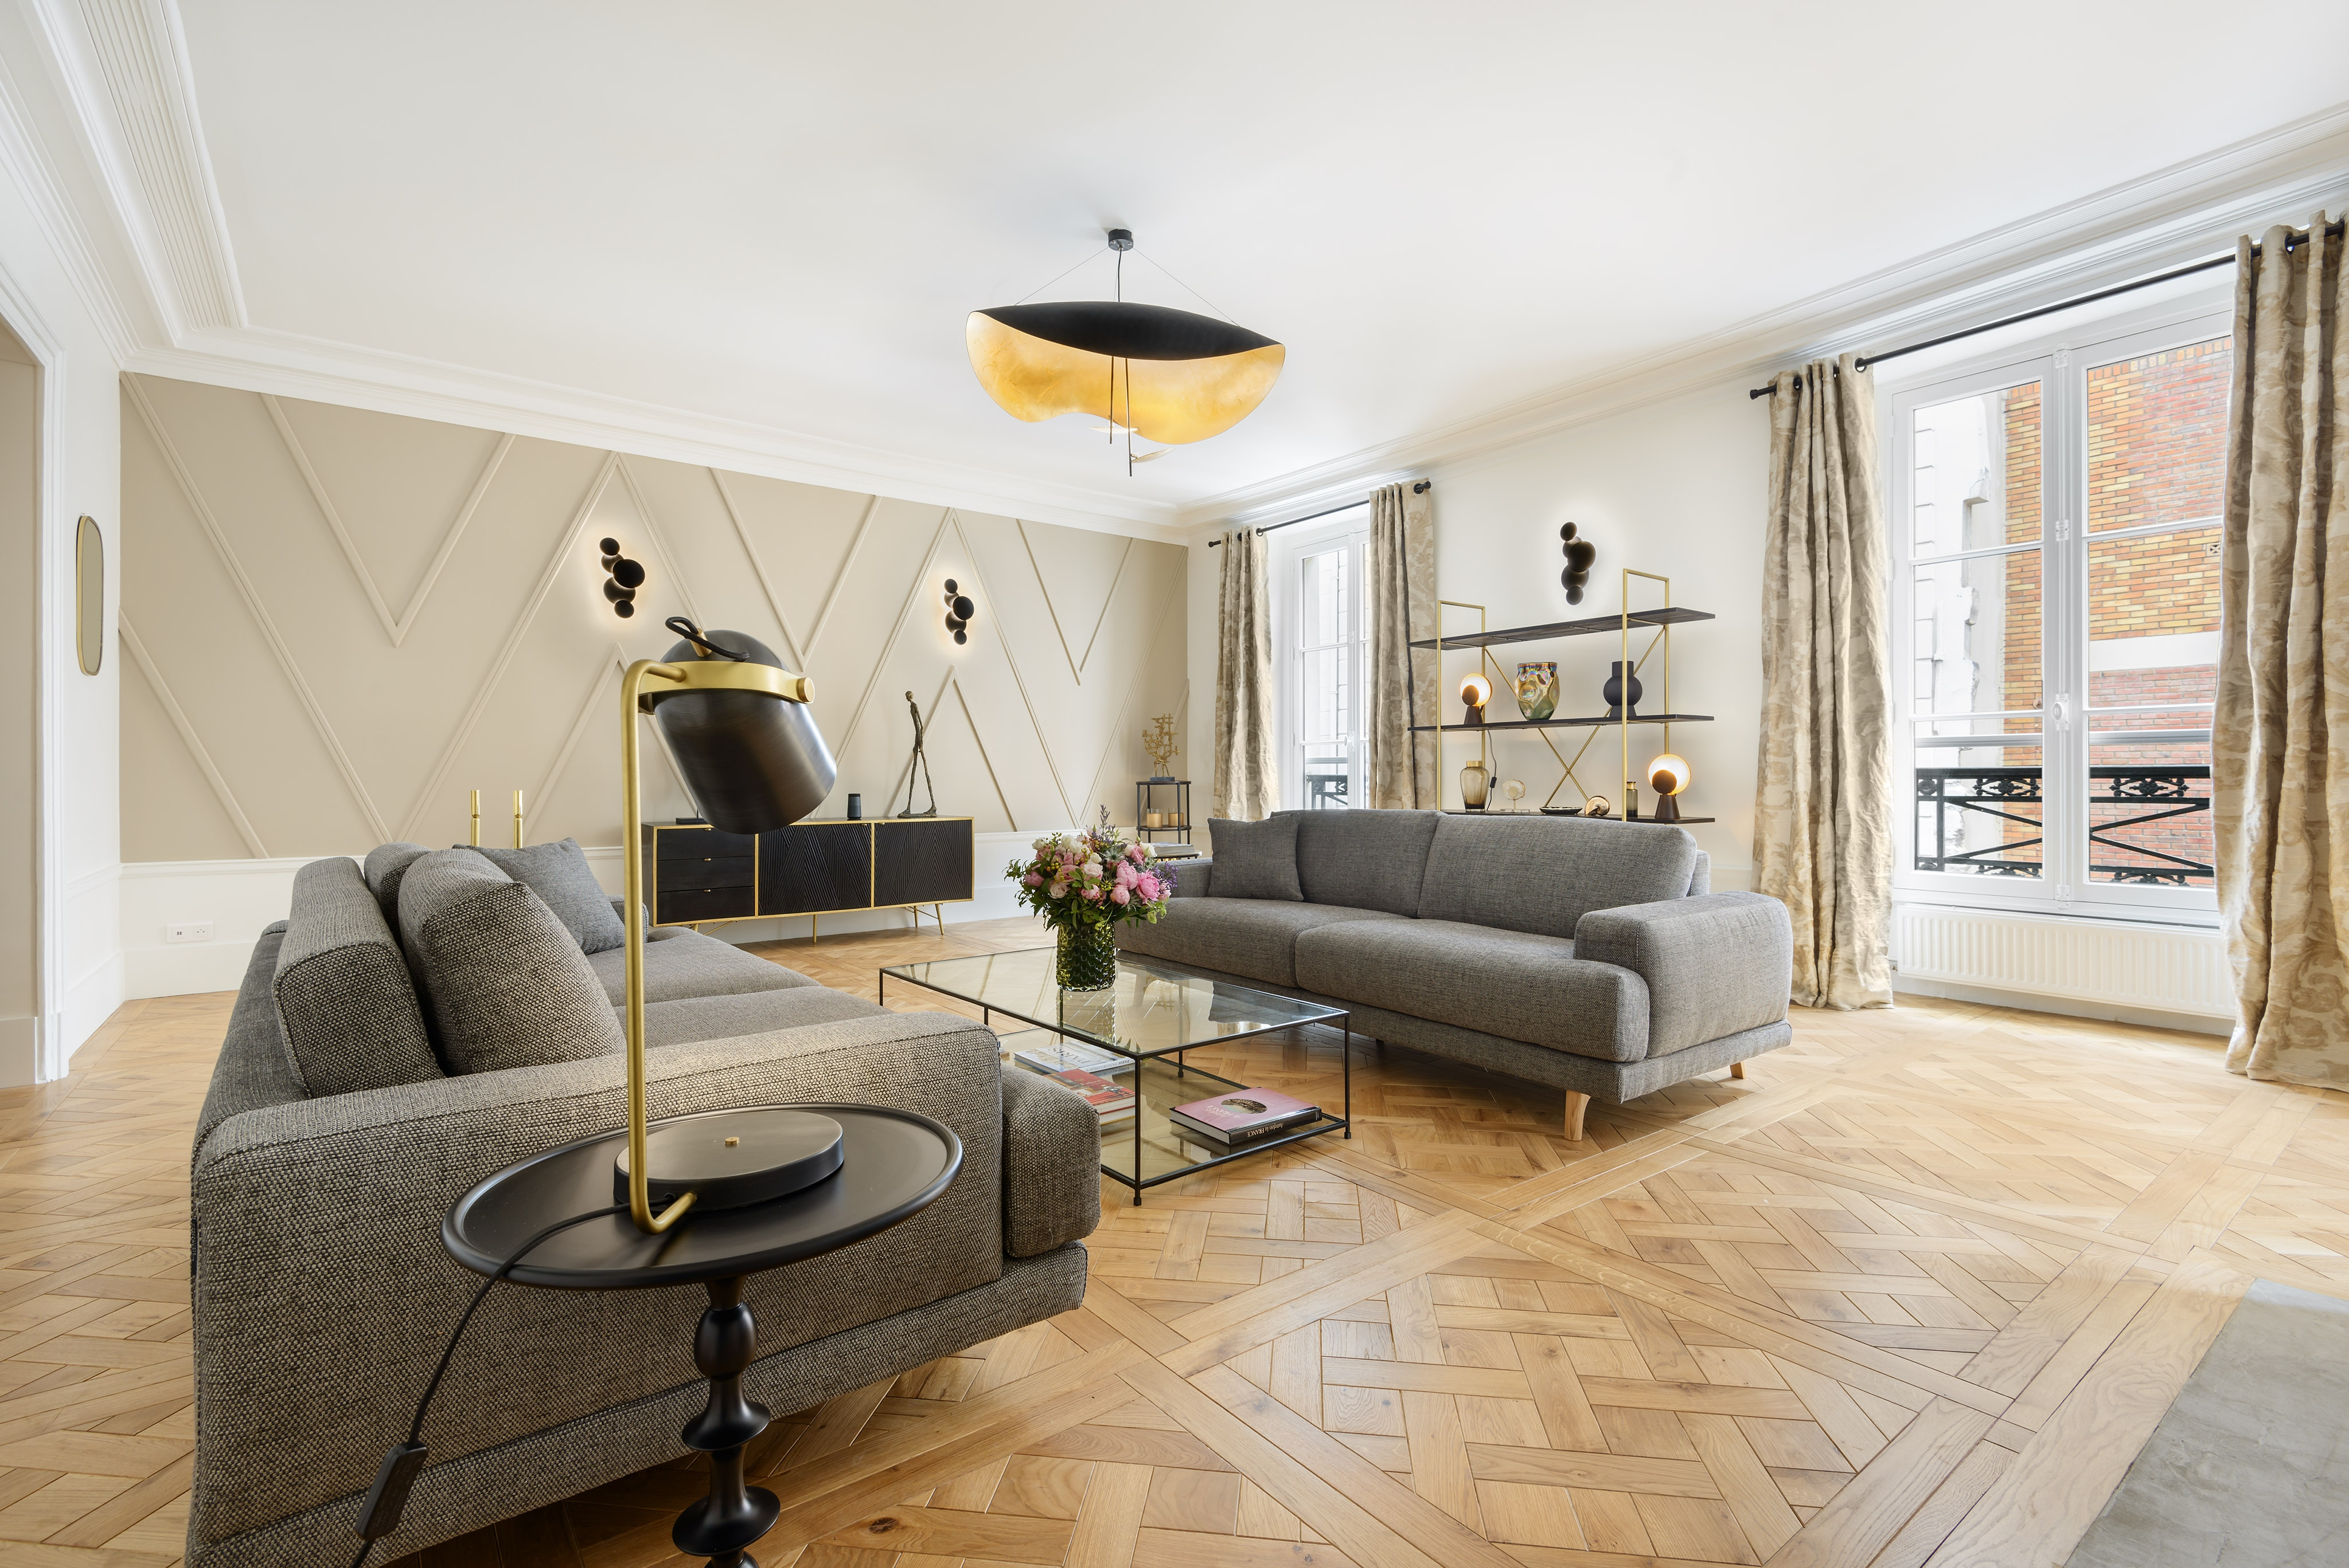 Property Image 1 - Modern Chic 2 bedroom apartment in the heart of the Marais